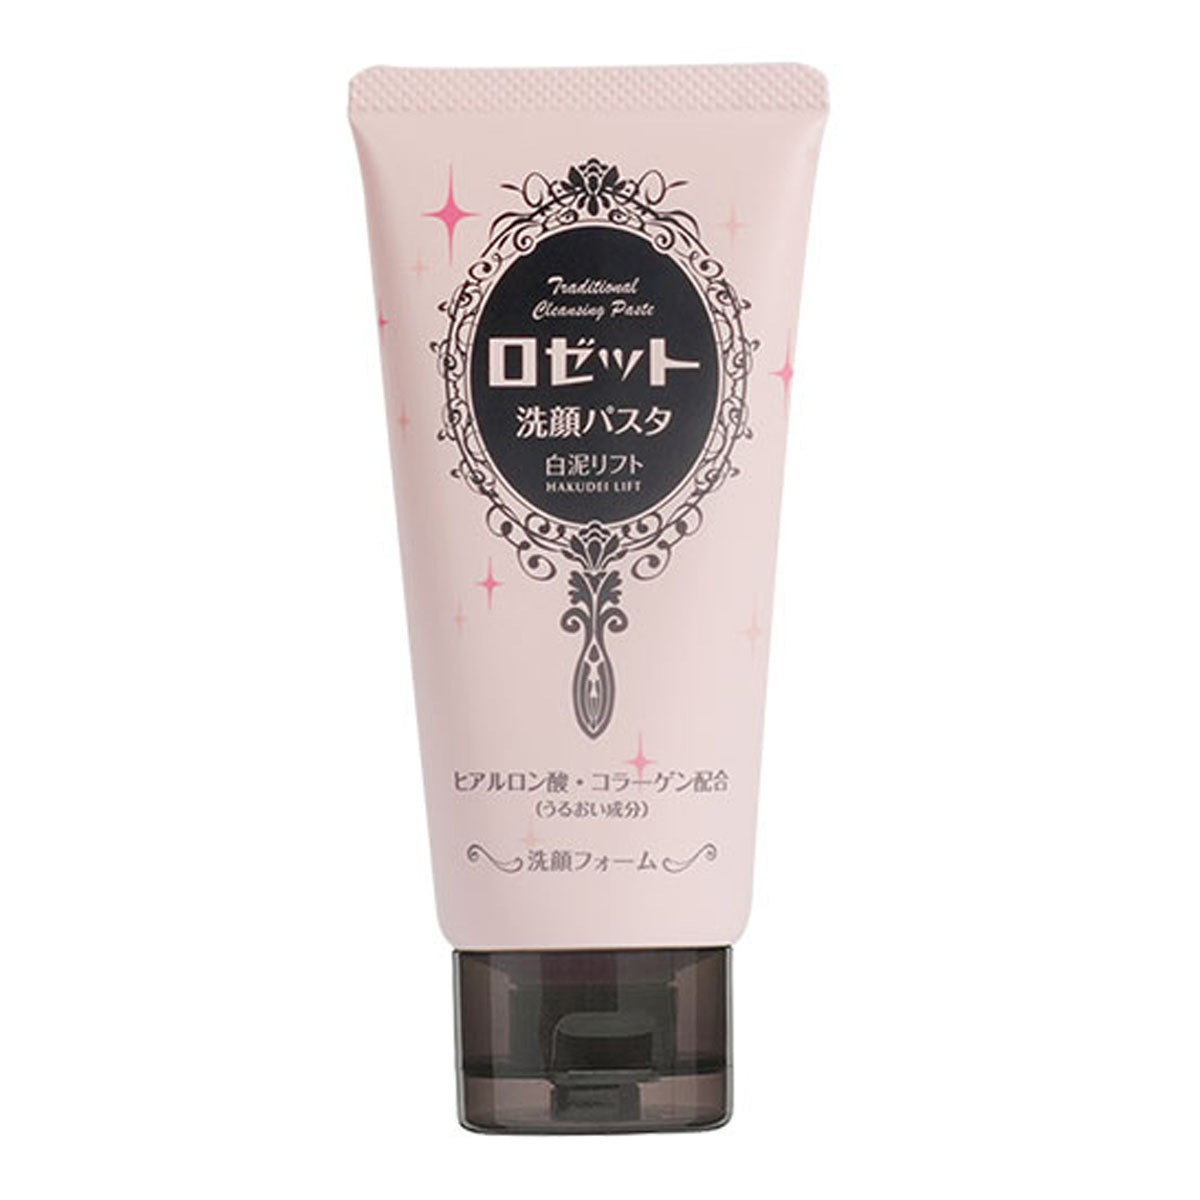 Yamibuy.com:Customer reviews:ROSETTE White Clay Moisturizing Facial Wash 120g